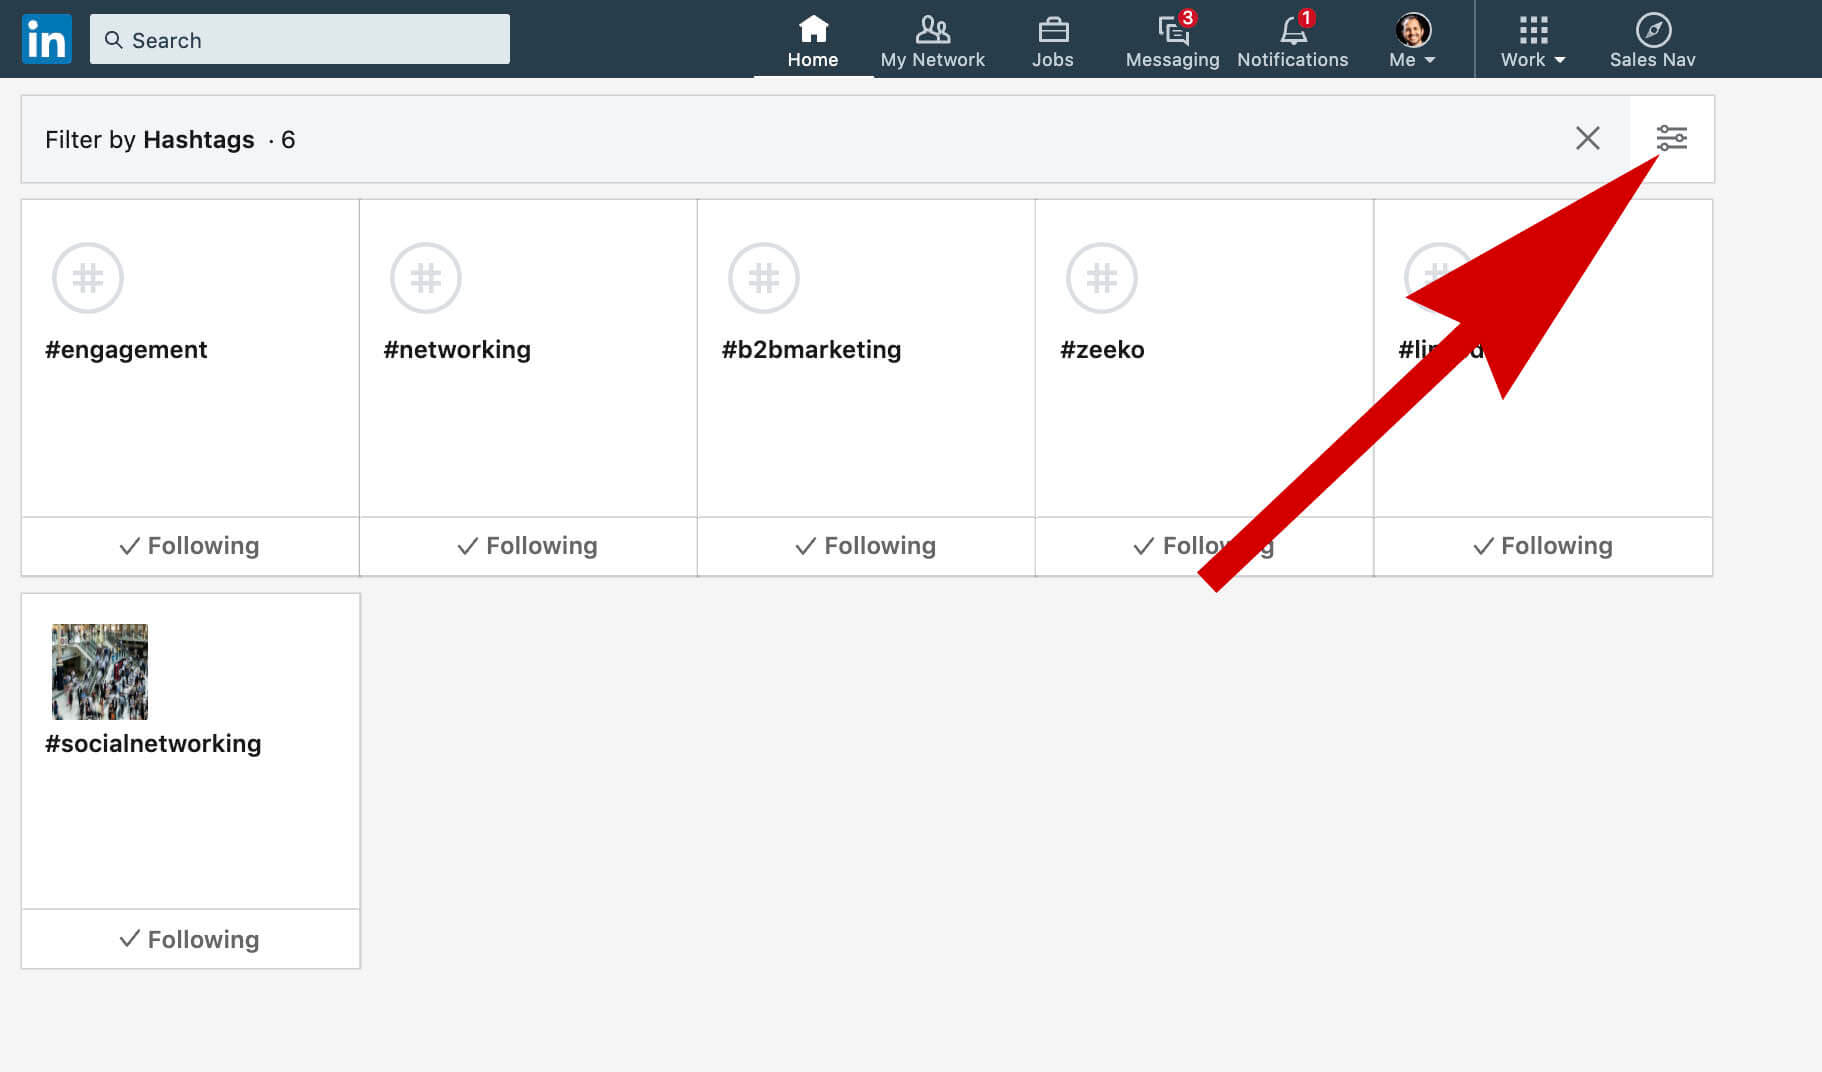 how to unfollow someone on Linkedin without viewing their profile - click toggle